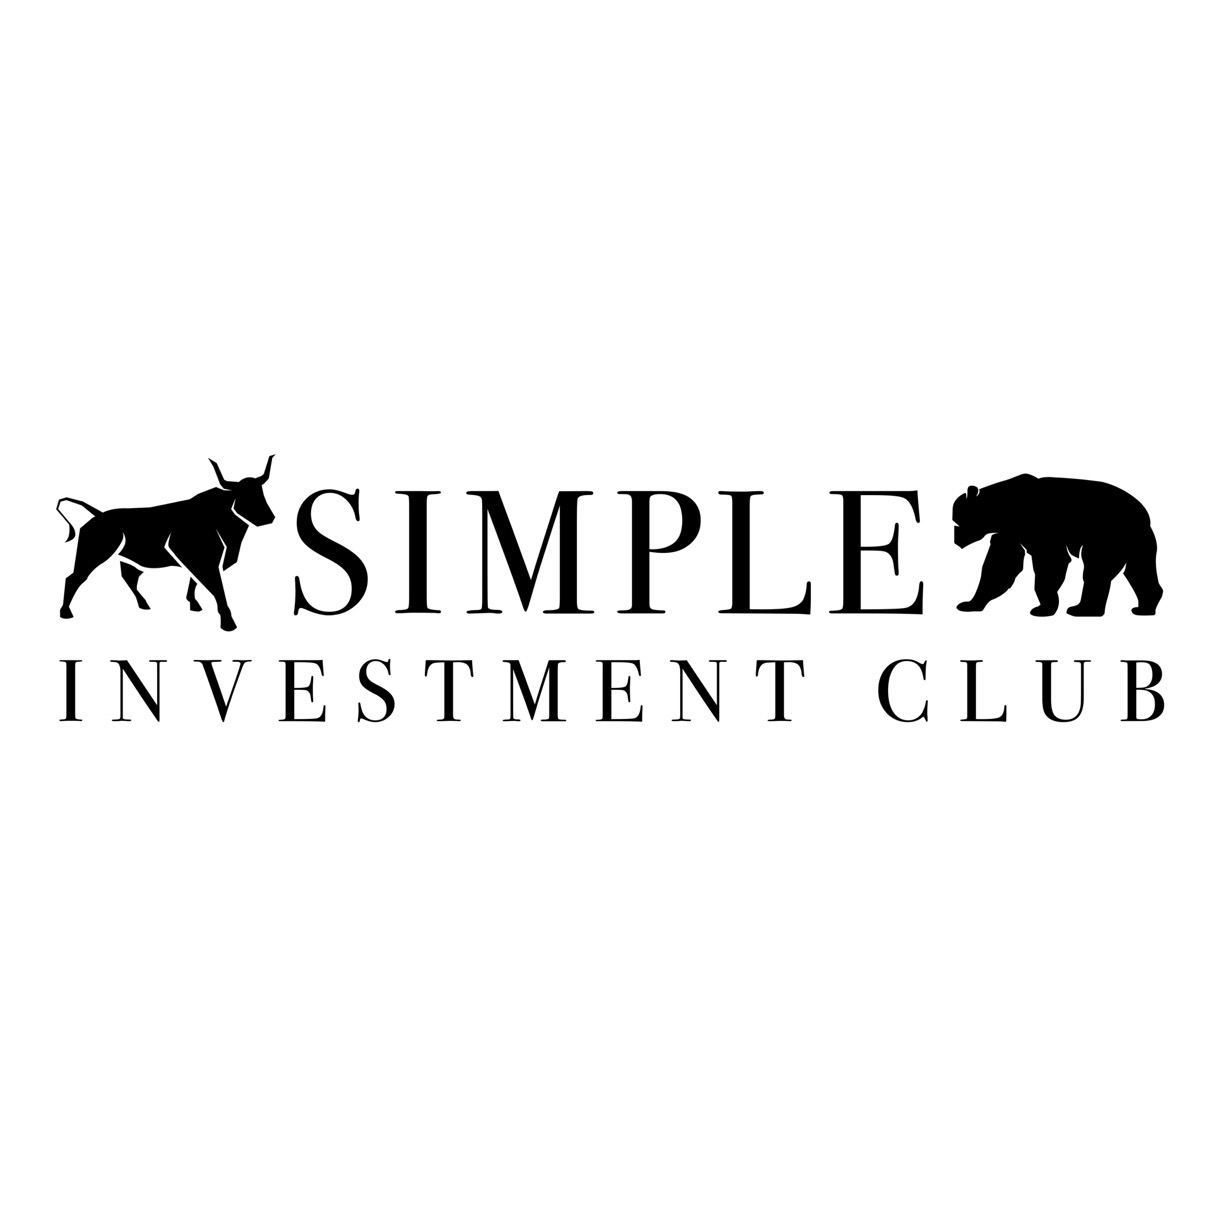 - Simple Investment ClubChicago, Illinois